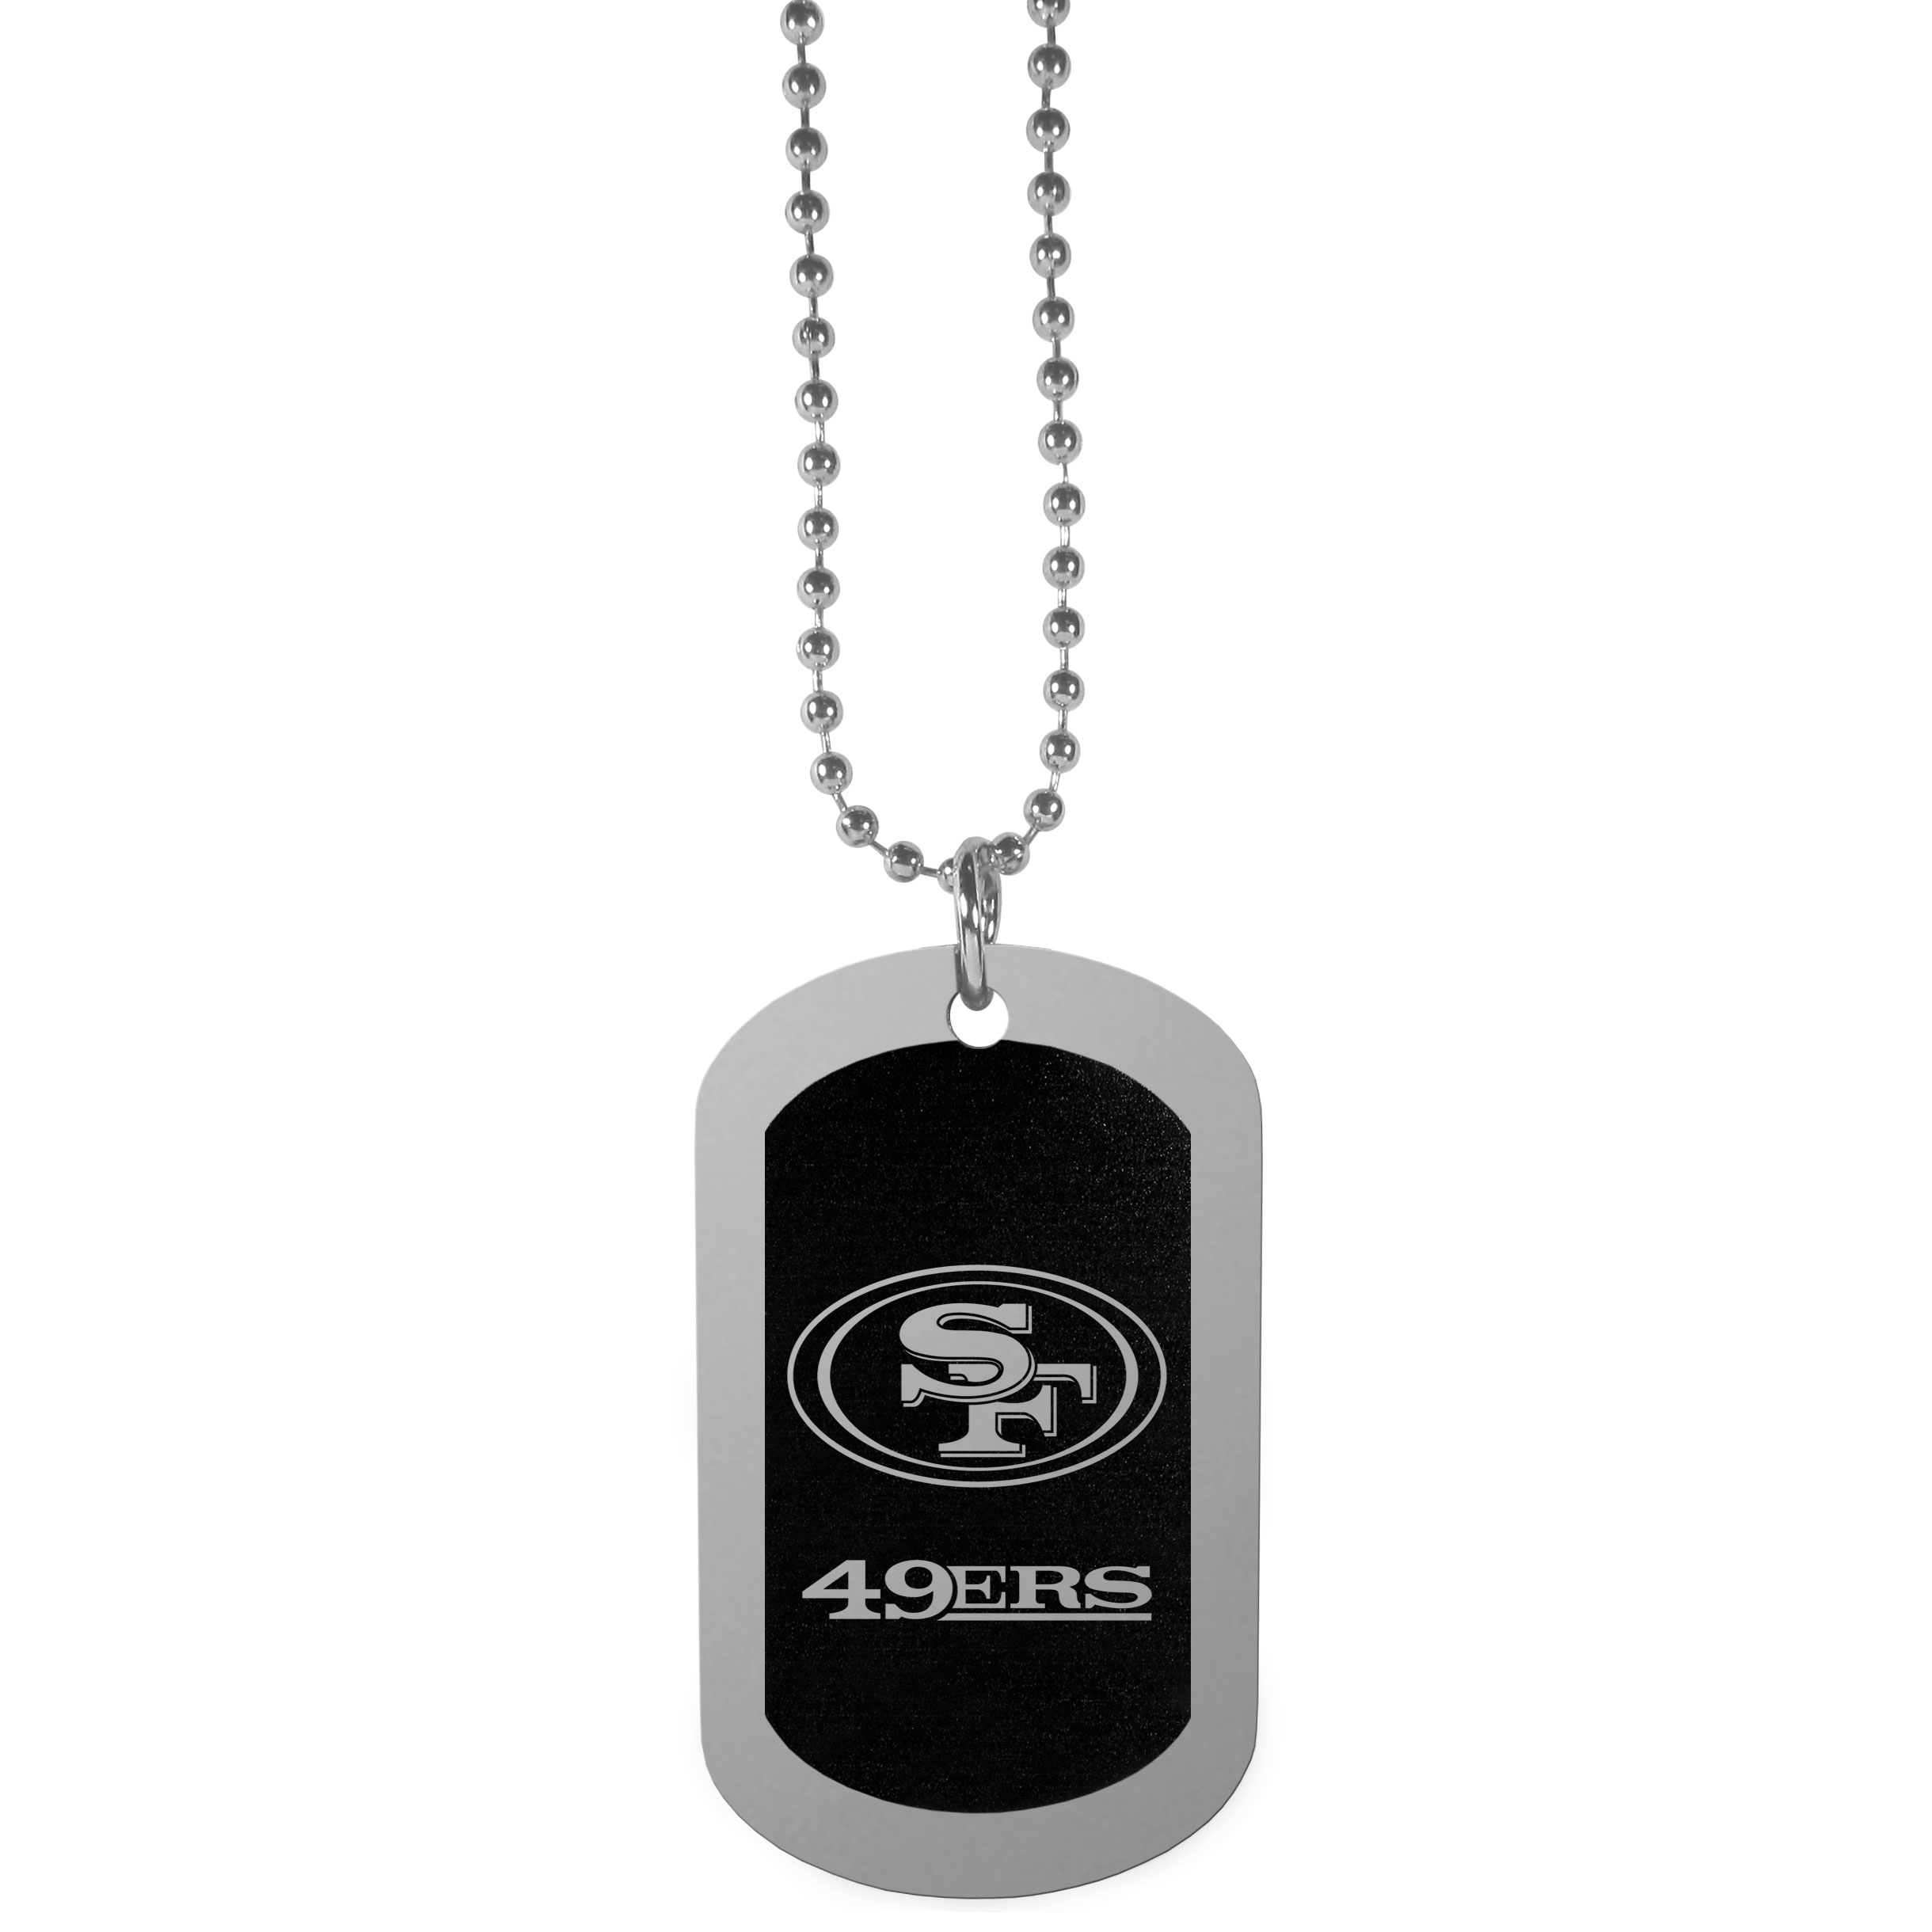 San Francisco 49ers Chrome Tag Necklace - Dog tag necklaces are a fashion statement that is here to stay. The sporty version of the classic tag features a black printed over a high polish tag to create a bold and sporty look. The tag comes on a 26 inch ball chain with a ball and joint clasp. Any San Francisco 49ers would be proud to wear this attractive fashion accessory.